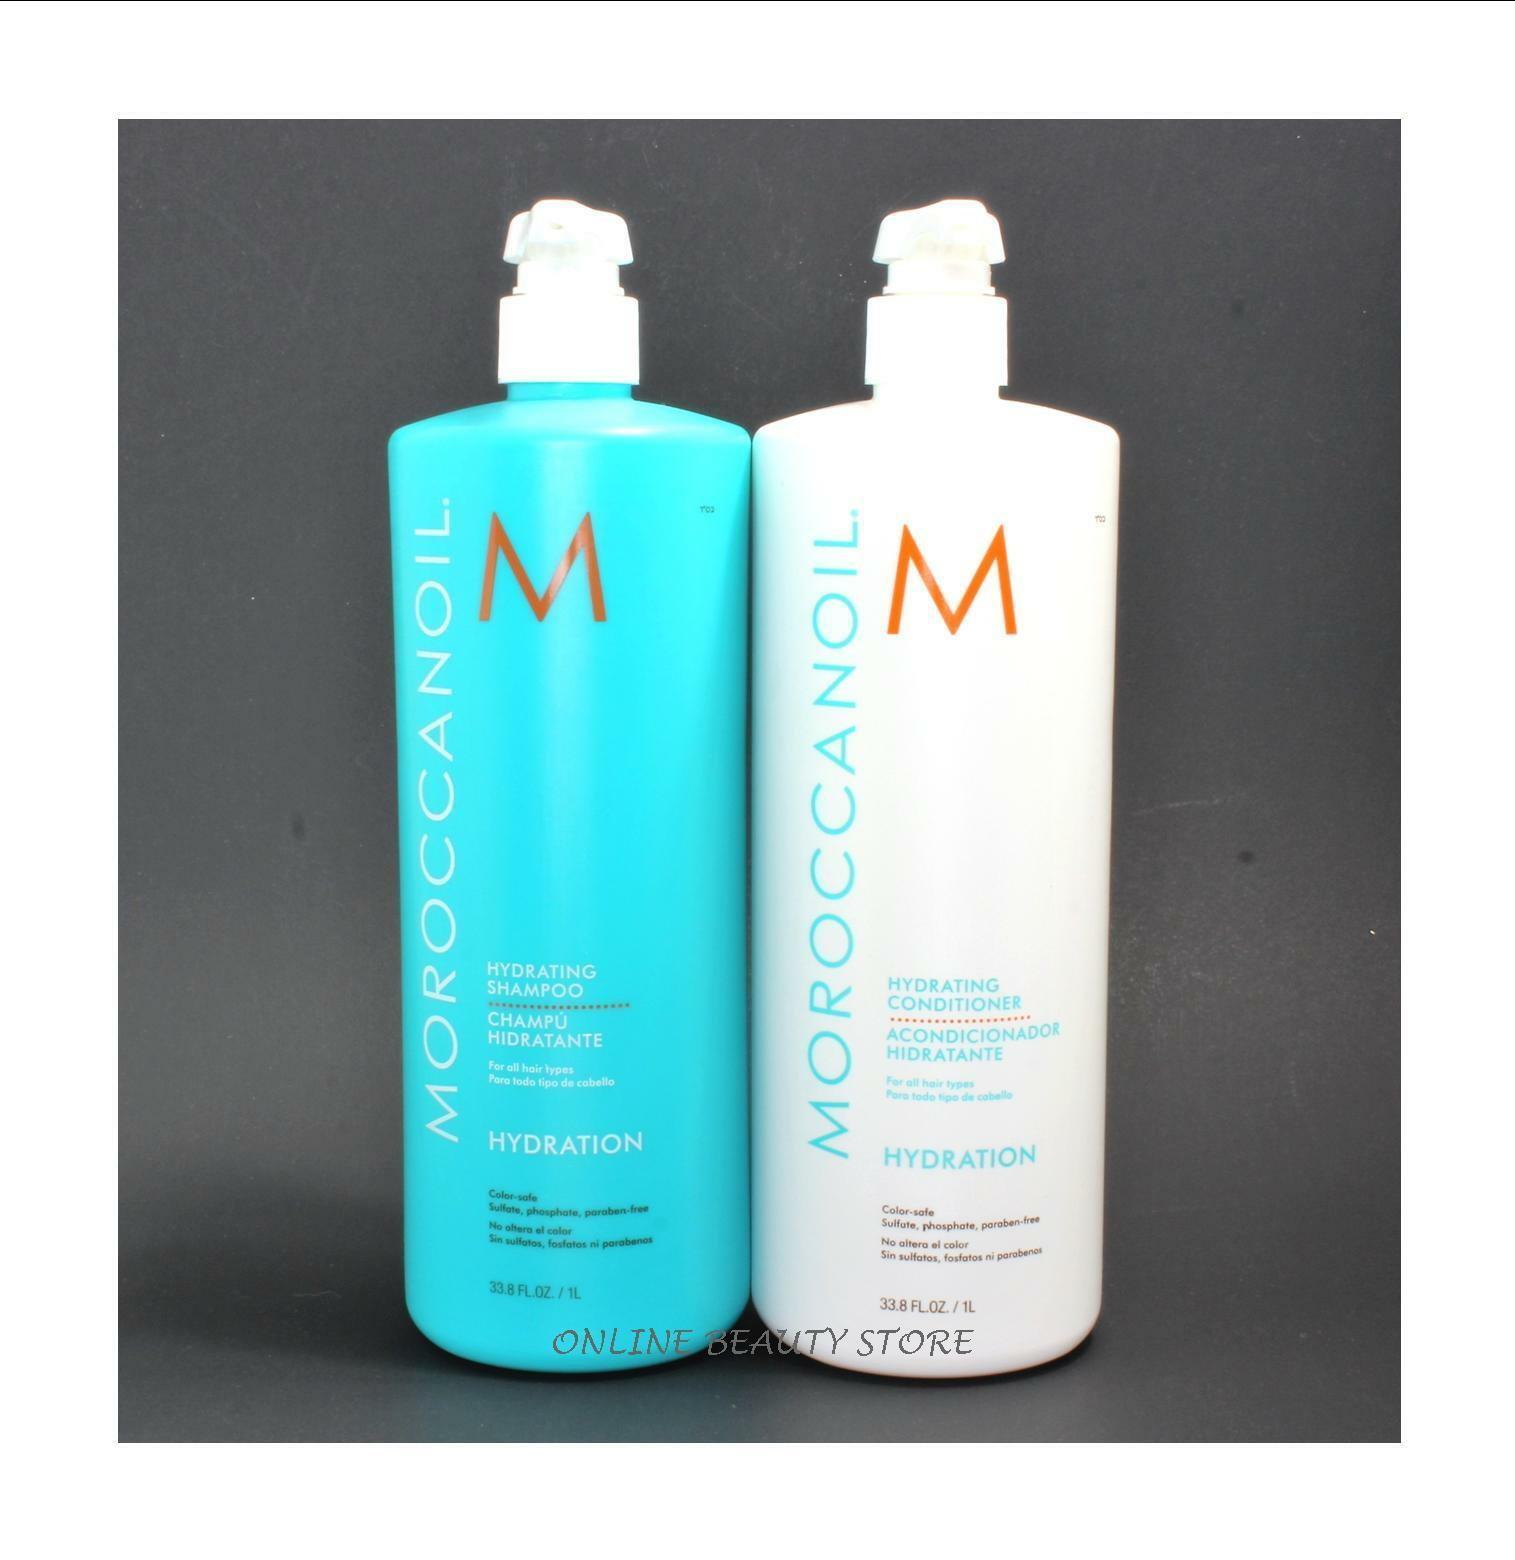 hydration shampoo and conditioner 33 8 fl